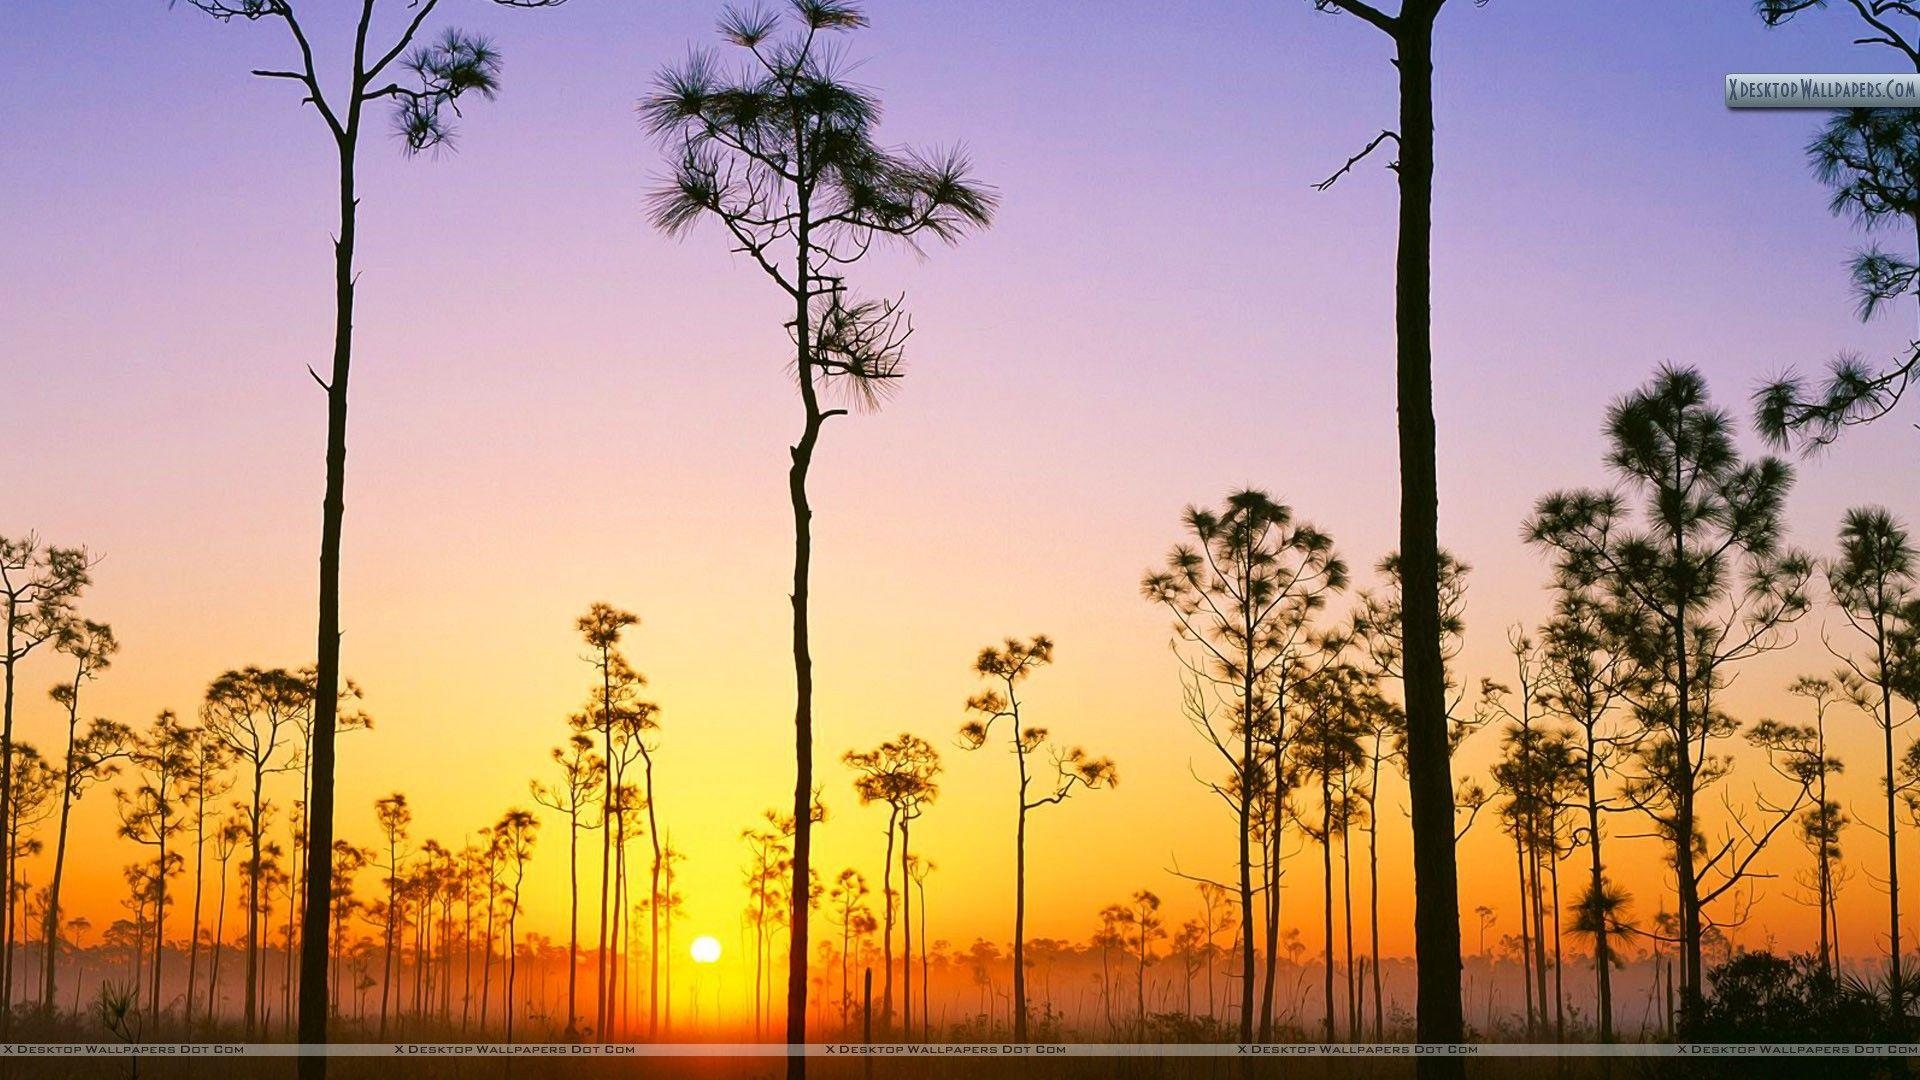 Silhouetted Pines at Sunrise, Everglades National Park, Florida